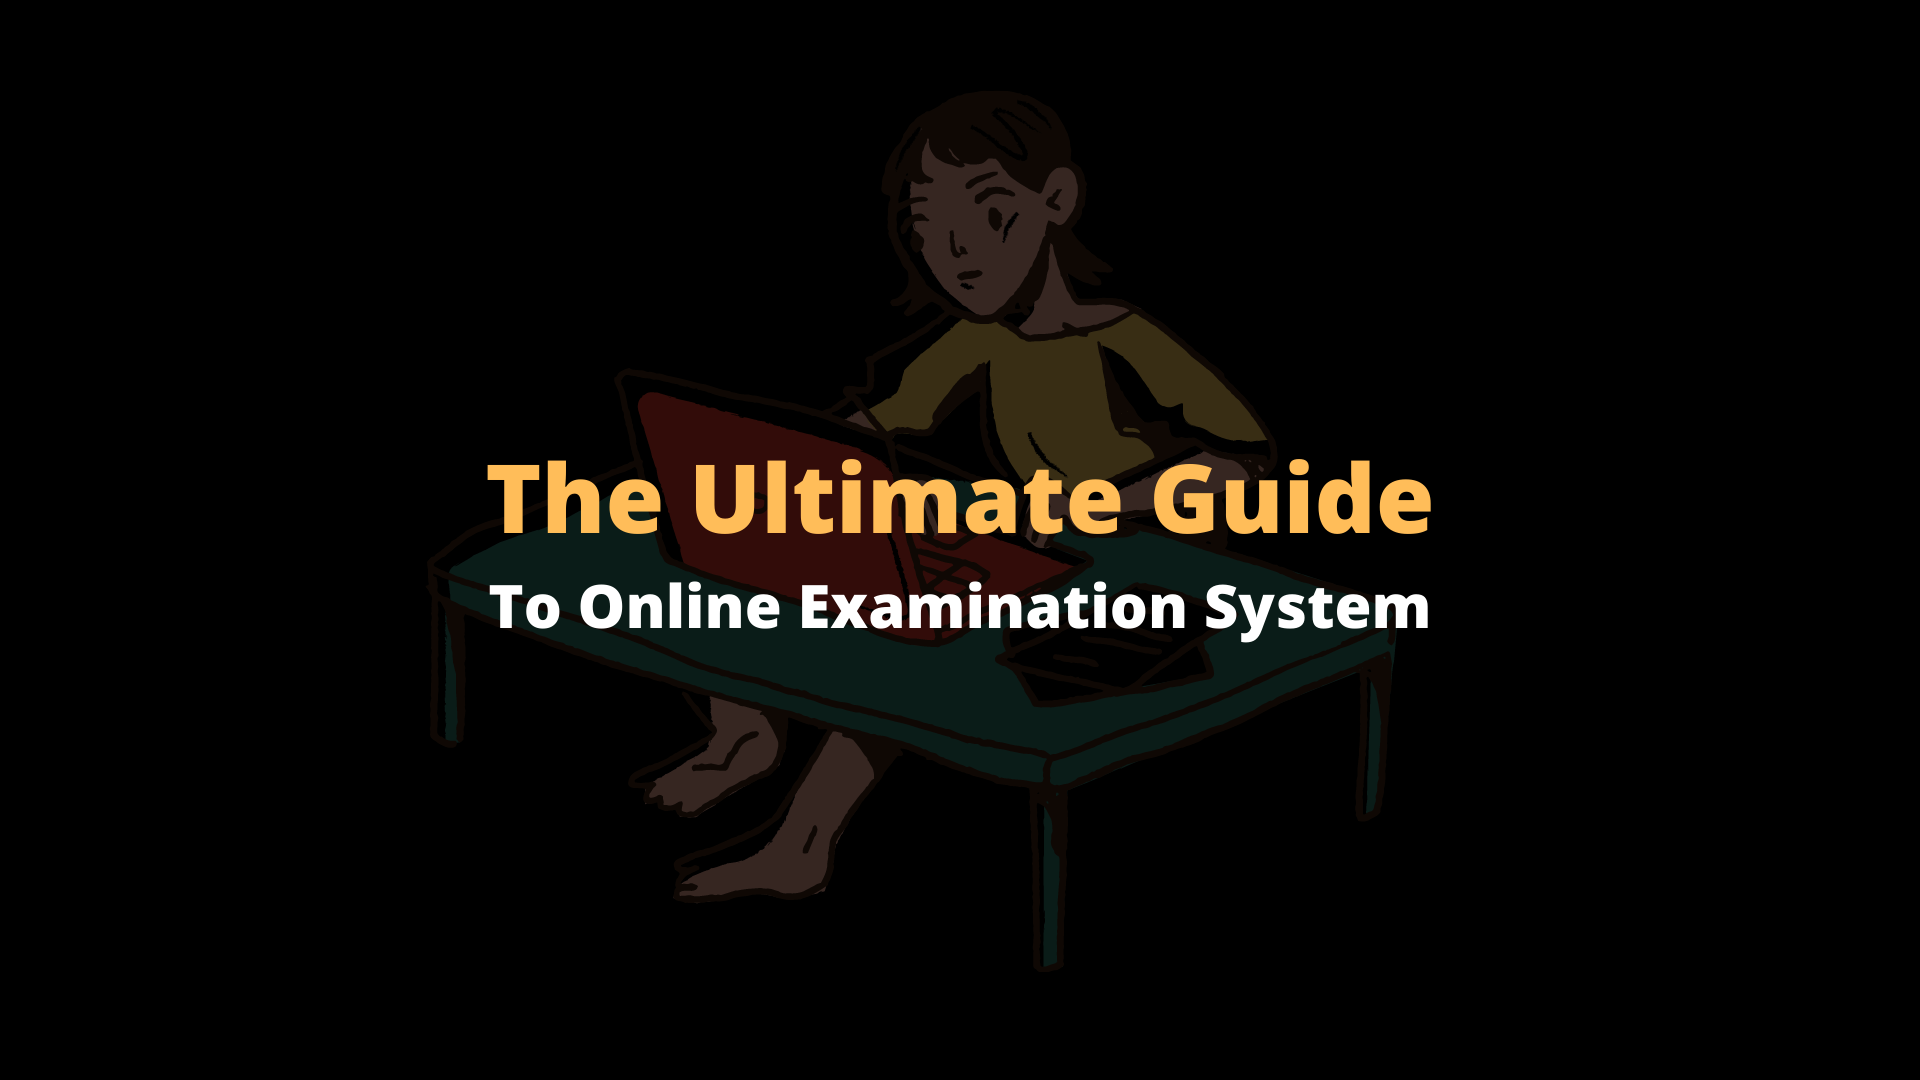 The Ultimate Guide To Online Examination System